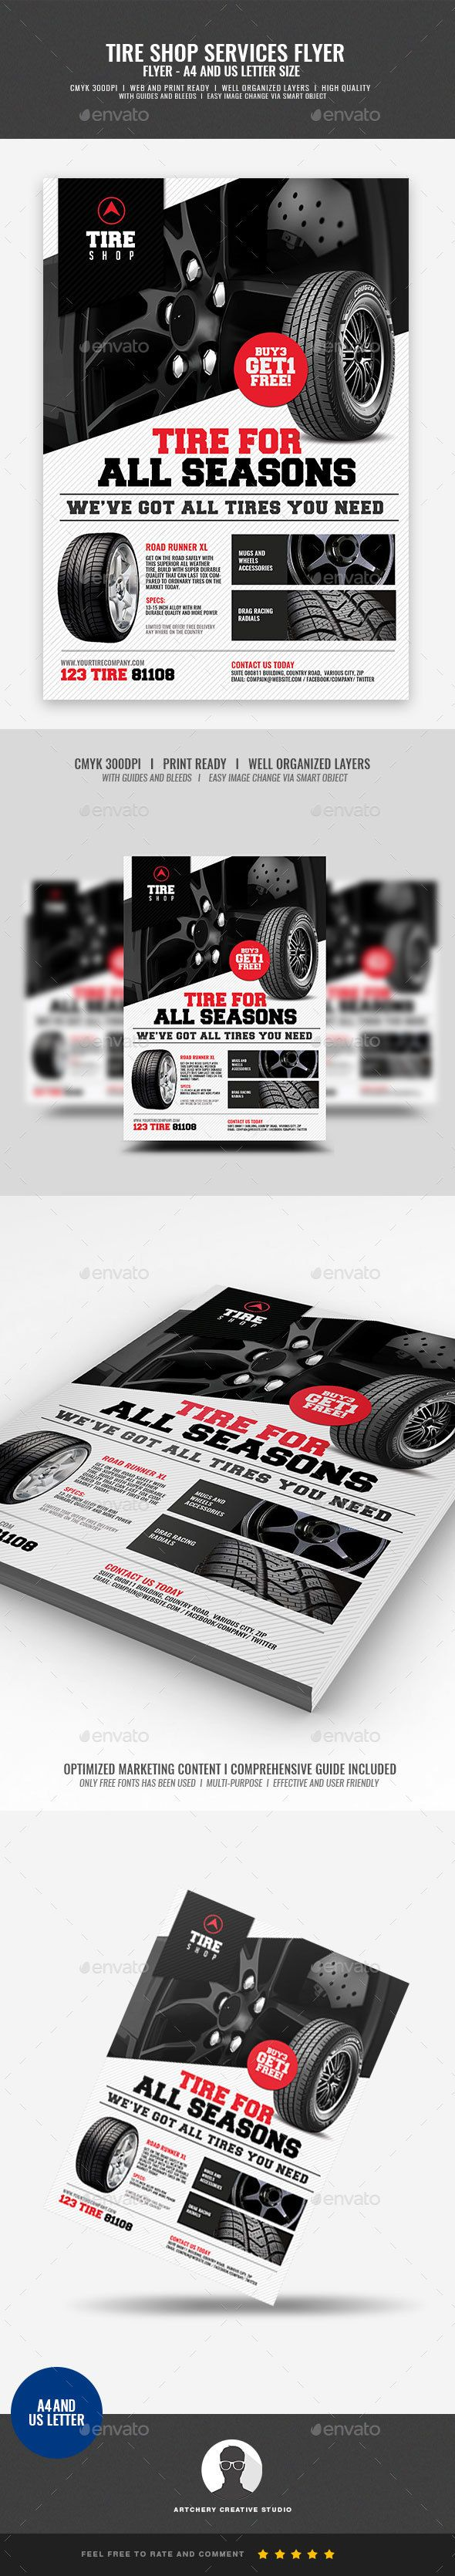 Tire Shop Promotional Flyer Design Template Boost your company¡¯s sales and attract new customers! This Tire Shop Promotional Flyer Design Template Design Template have been developed to boost your Ultimate Marketing Opportunity and brand/product awareness, Per